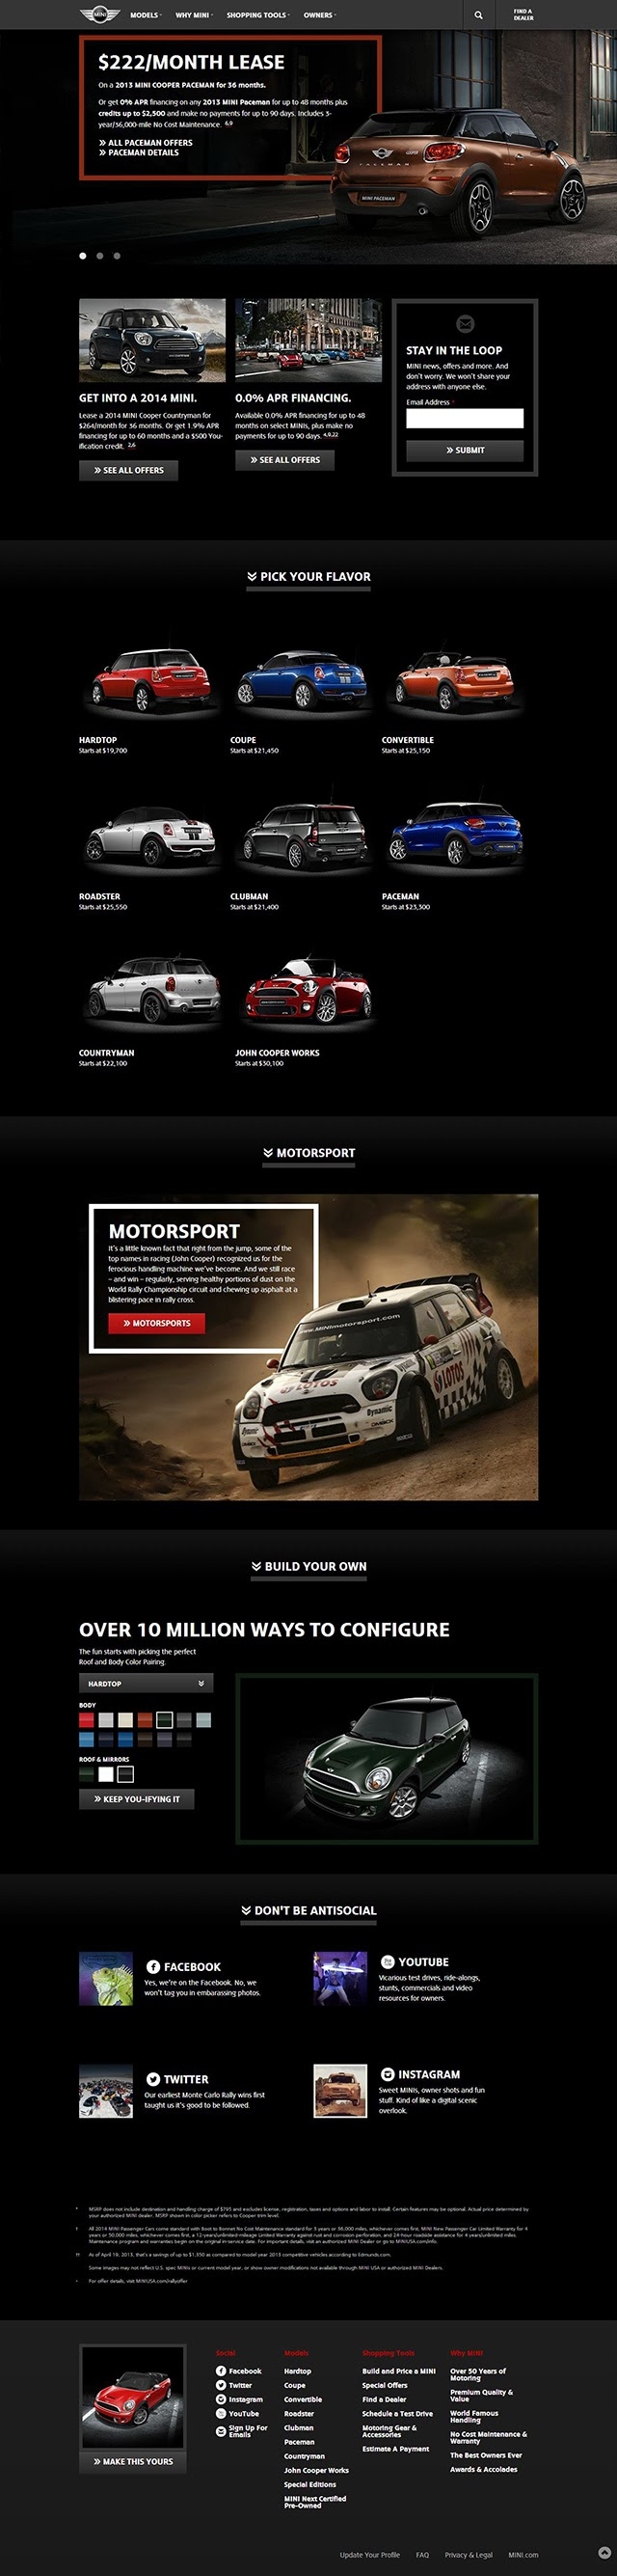 MINI USA website redesign 2013 (all)